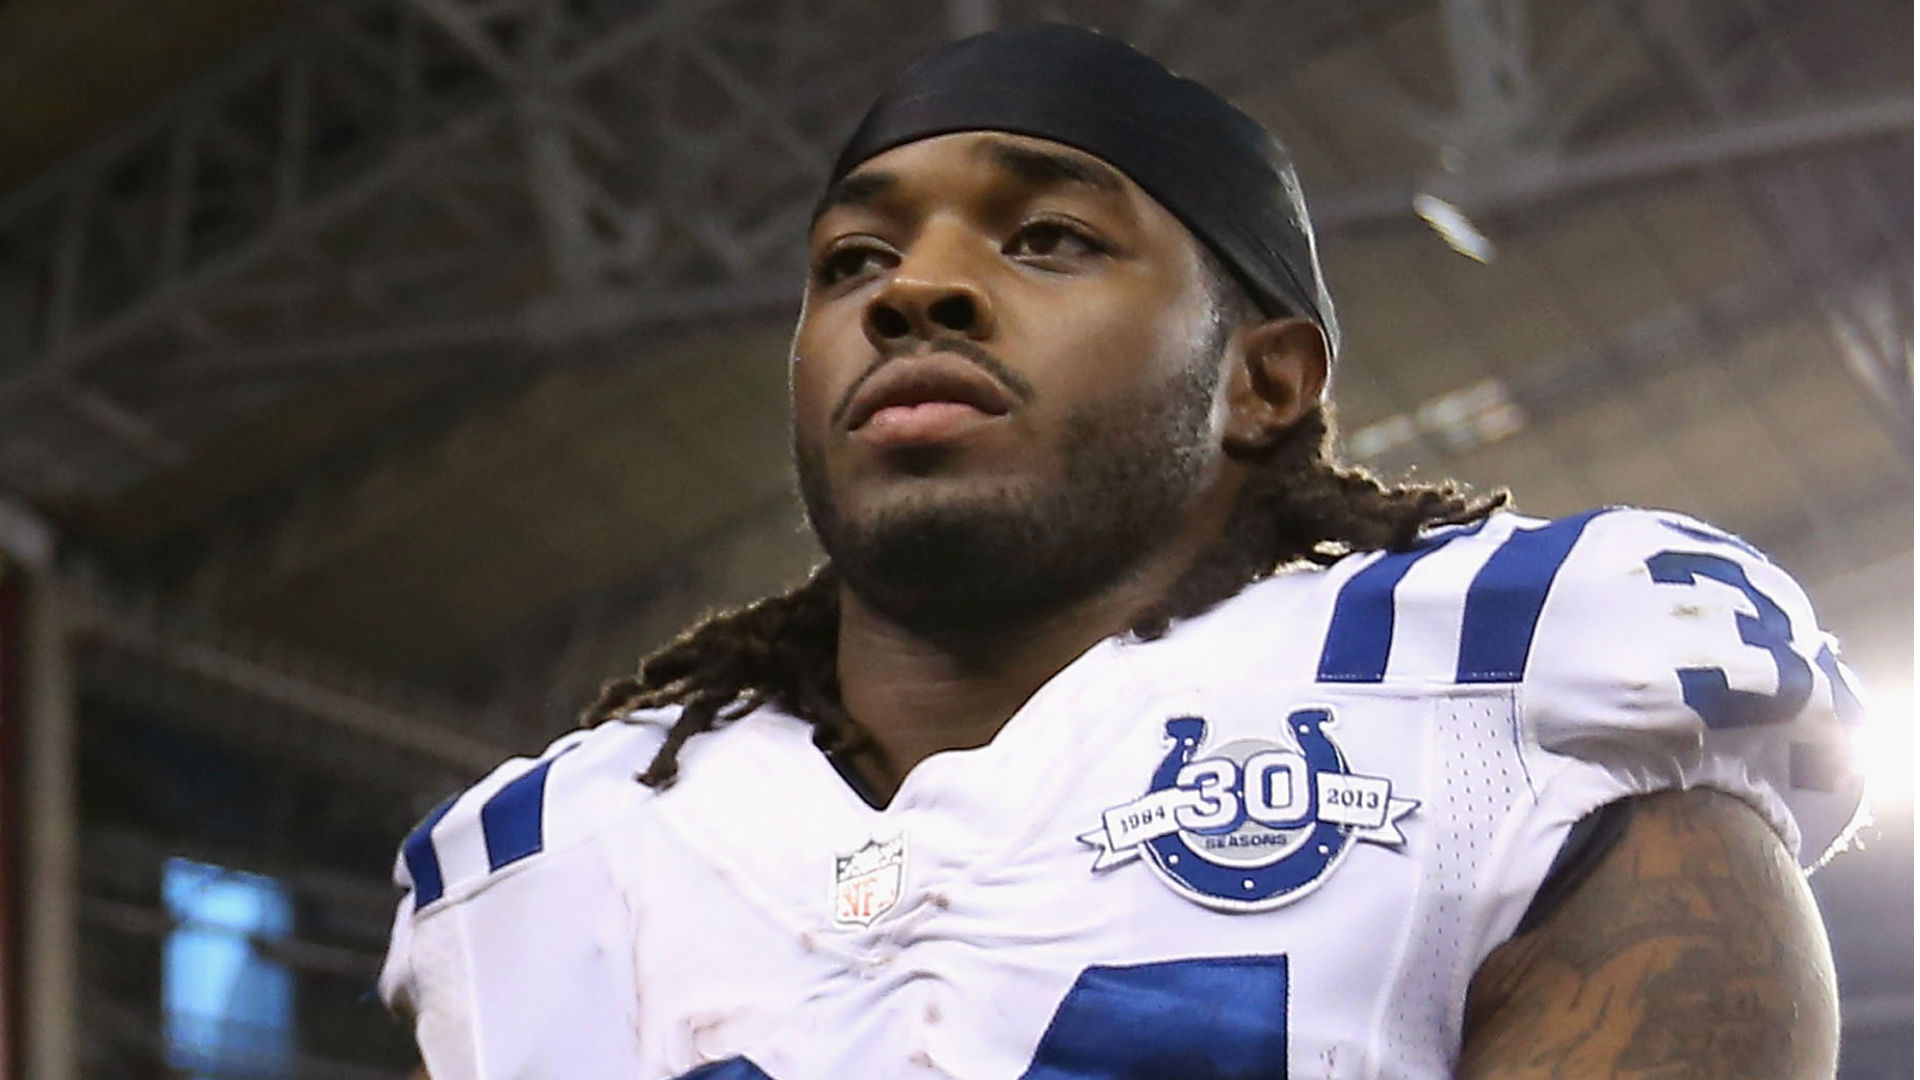 Trent Richardson's odds of making the Raiders roster set at 50/50